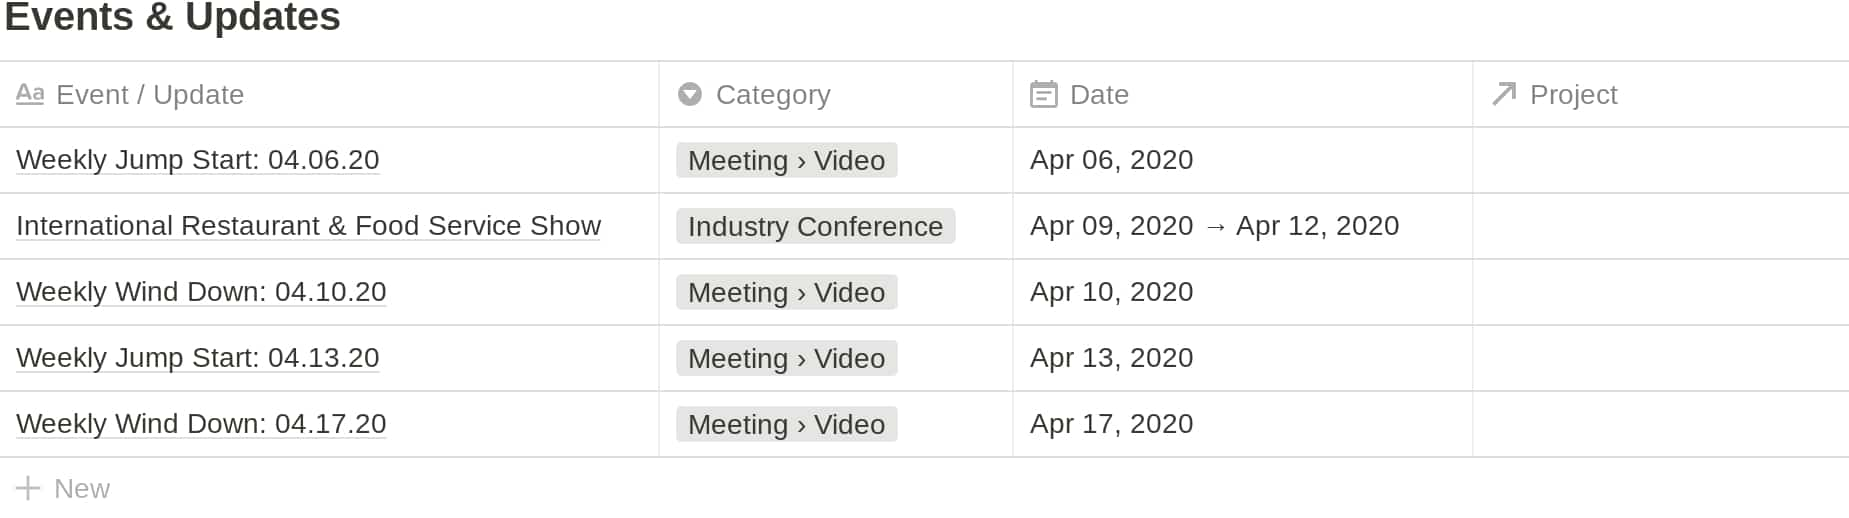 Notion VIP Client Portal: Events Database